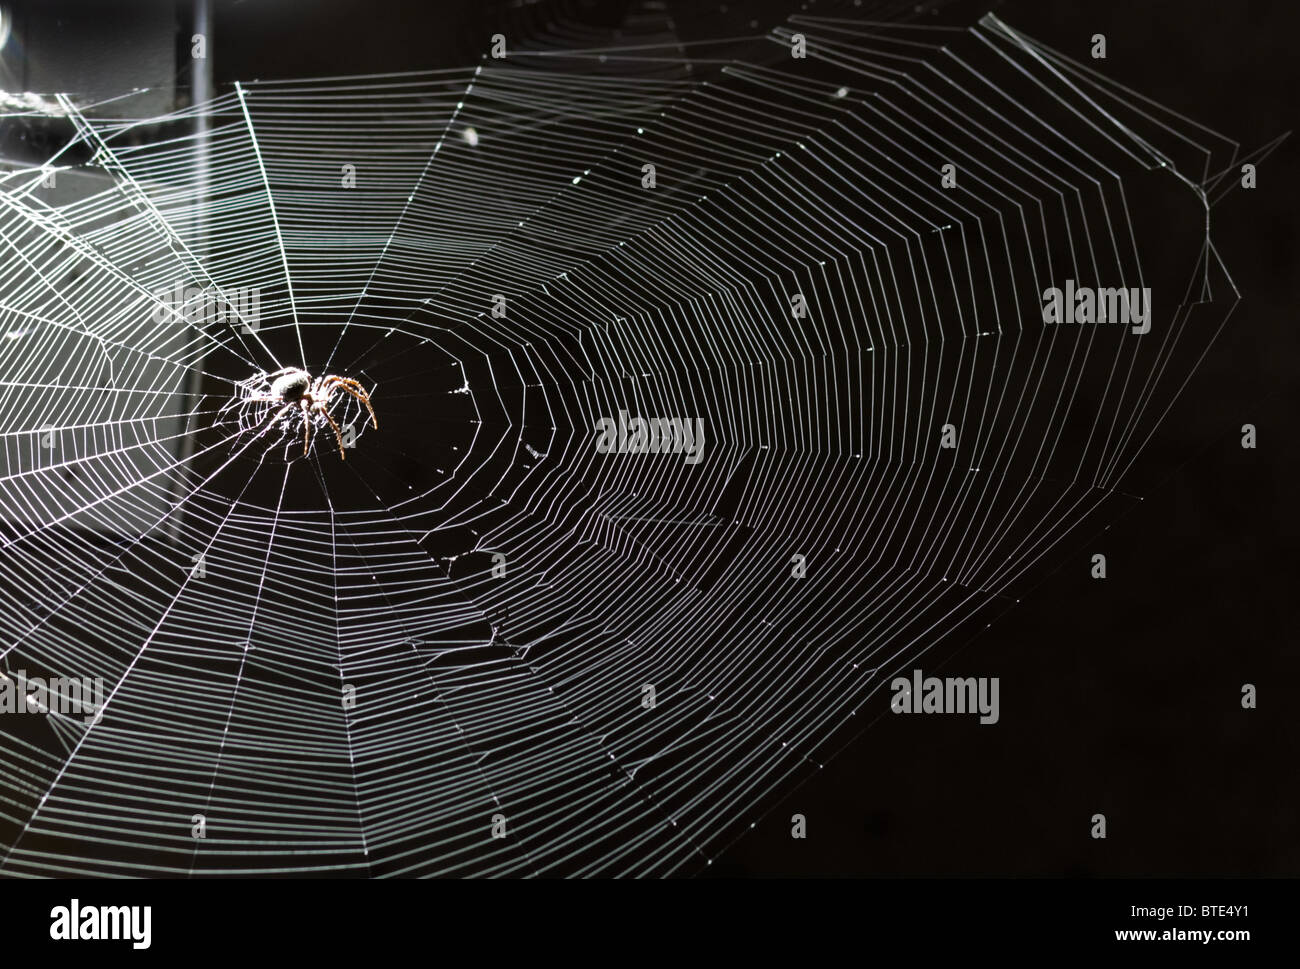 Spider in web at night. - Stock Image